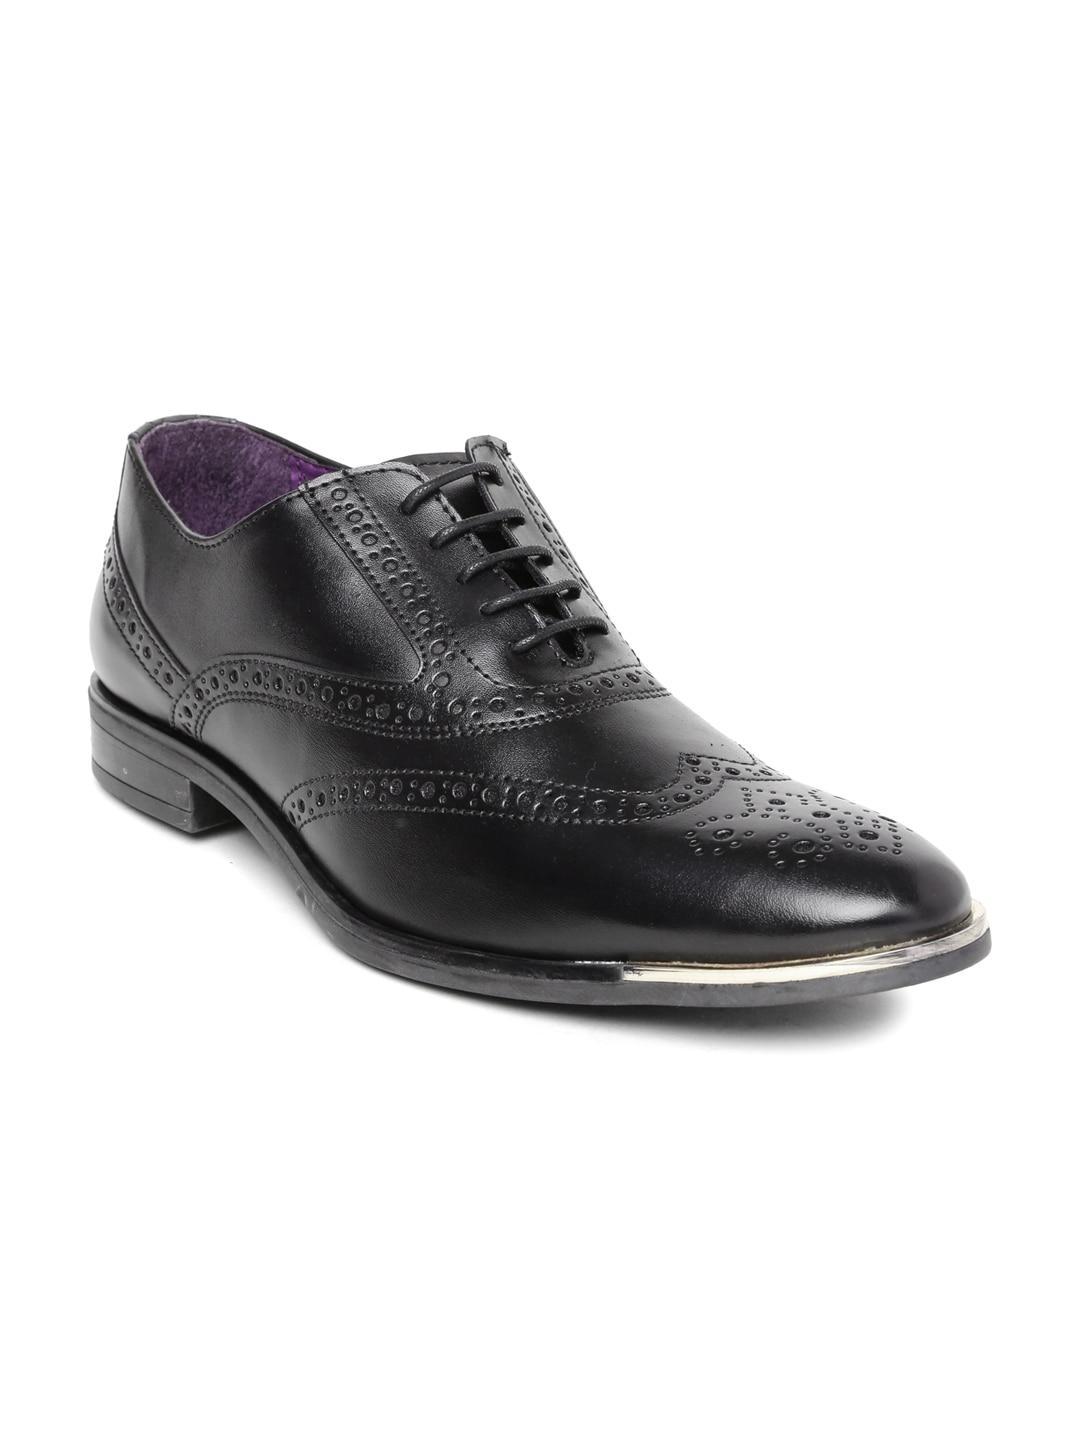 Knotty Derby Men Black Brogues image